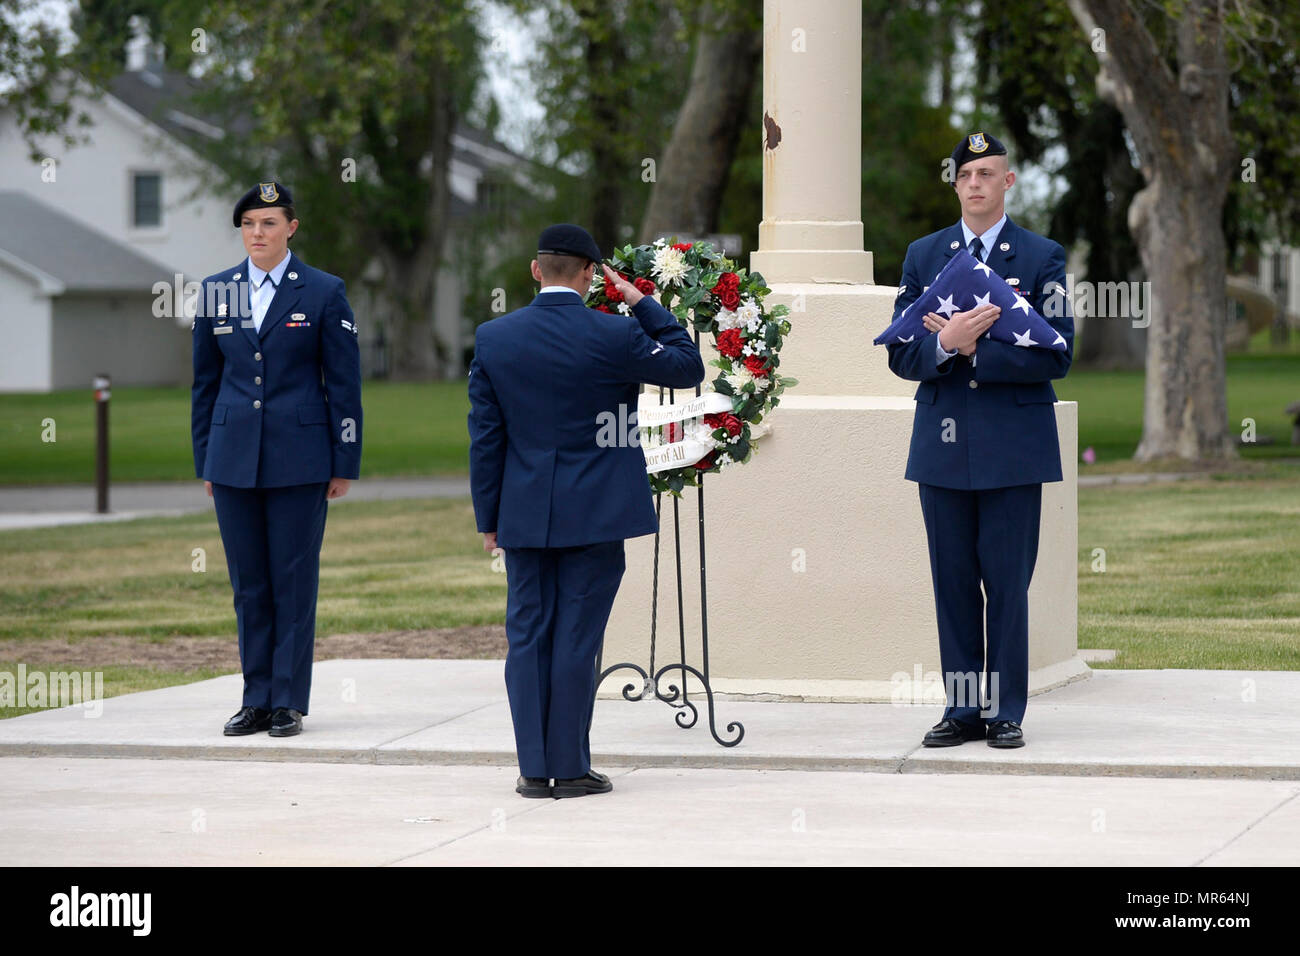 Airman Colin Coffman, 75th Security Forces Squadron, salutes